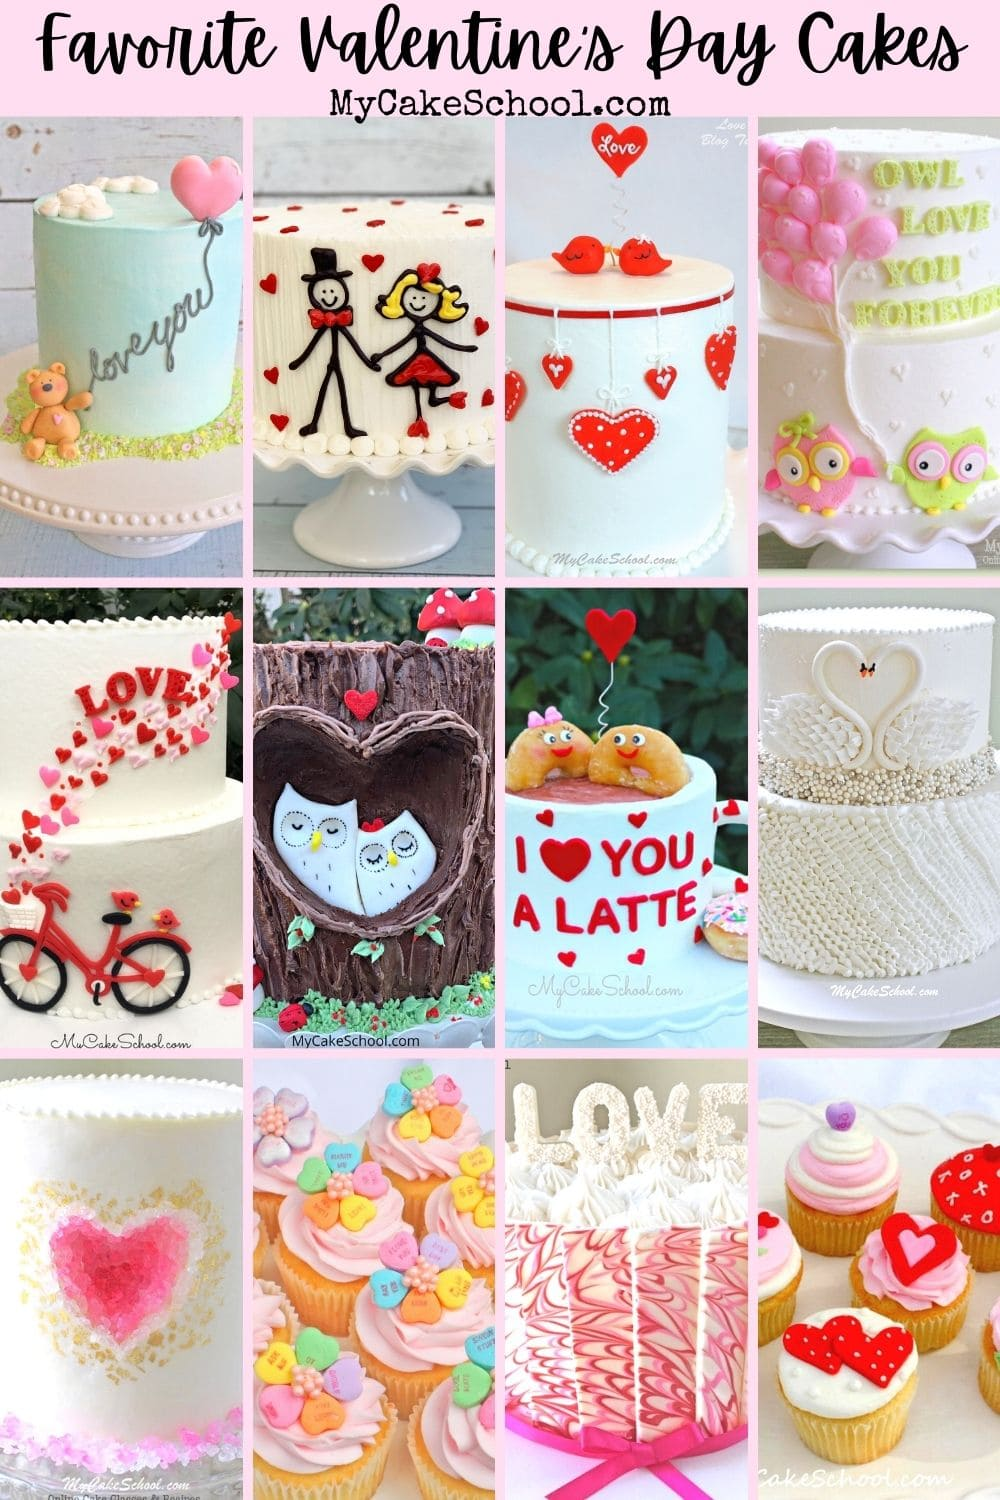 Sharing our Favorite Valentine's Day Cake Designs and Tutorials